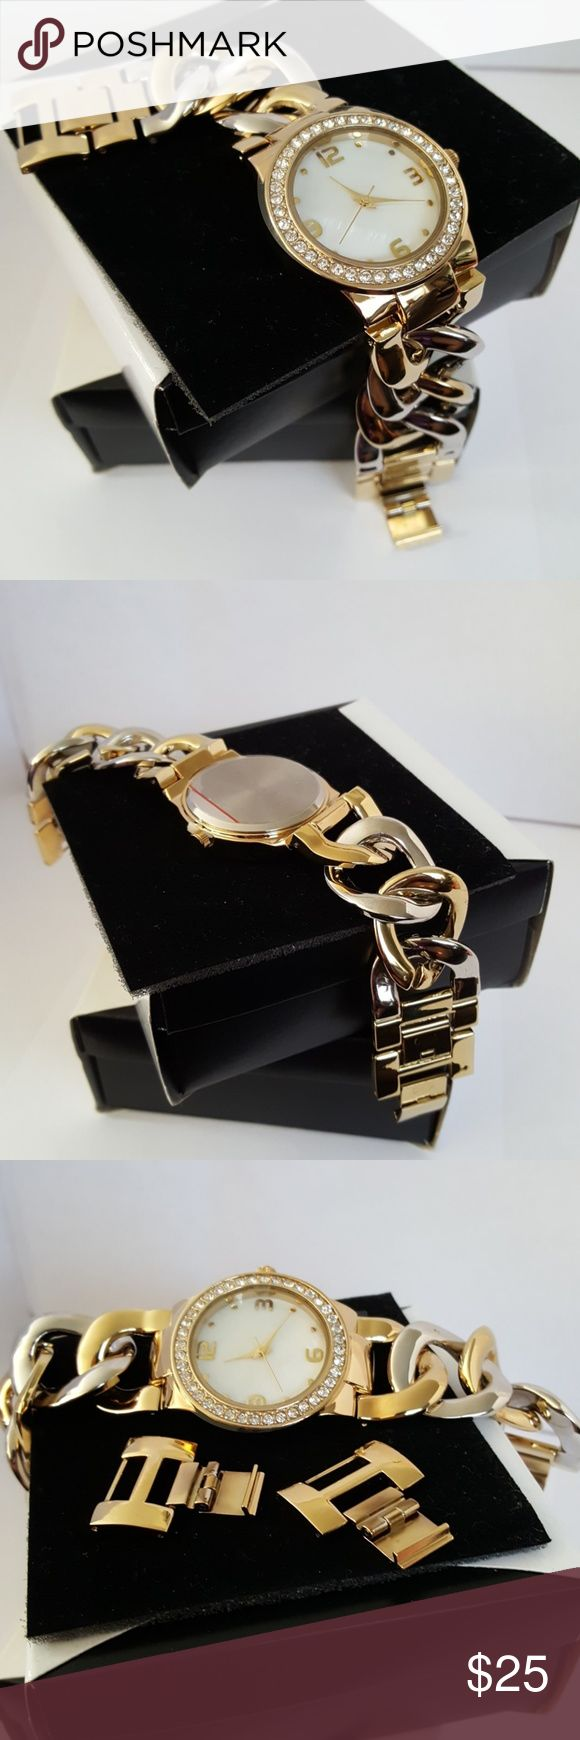 mark. by Avon All in Good Time Watch This GORGEOUS watch is fashion at its best! The two-tone chain link bracelet is adjustable with 2 removable links. The face features a pearlized face with diamondesque rhinestones surrounding. It has a nice heavy weight to it. Others will mistake it for a high end watch! You can't beat it! Questions?? Please feel free to ask! Happy Poshing!  **BRAND NEW** mark by Avon Accessories Watches